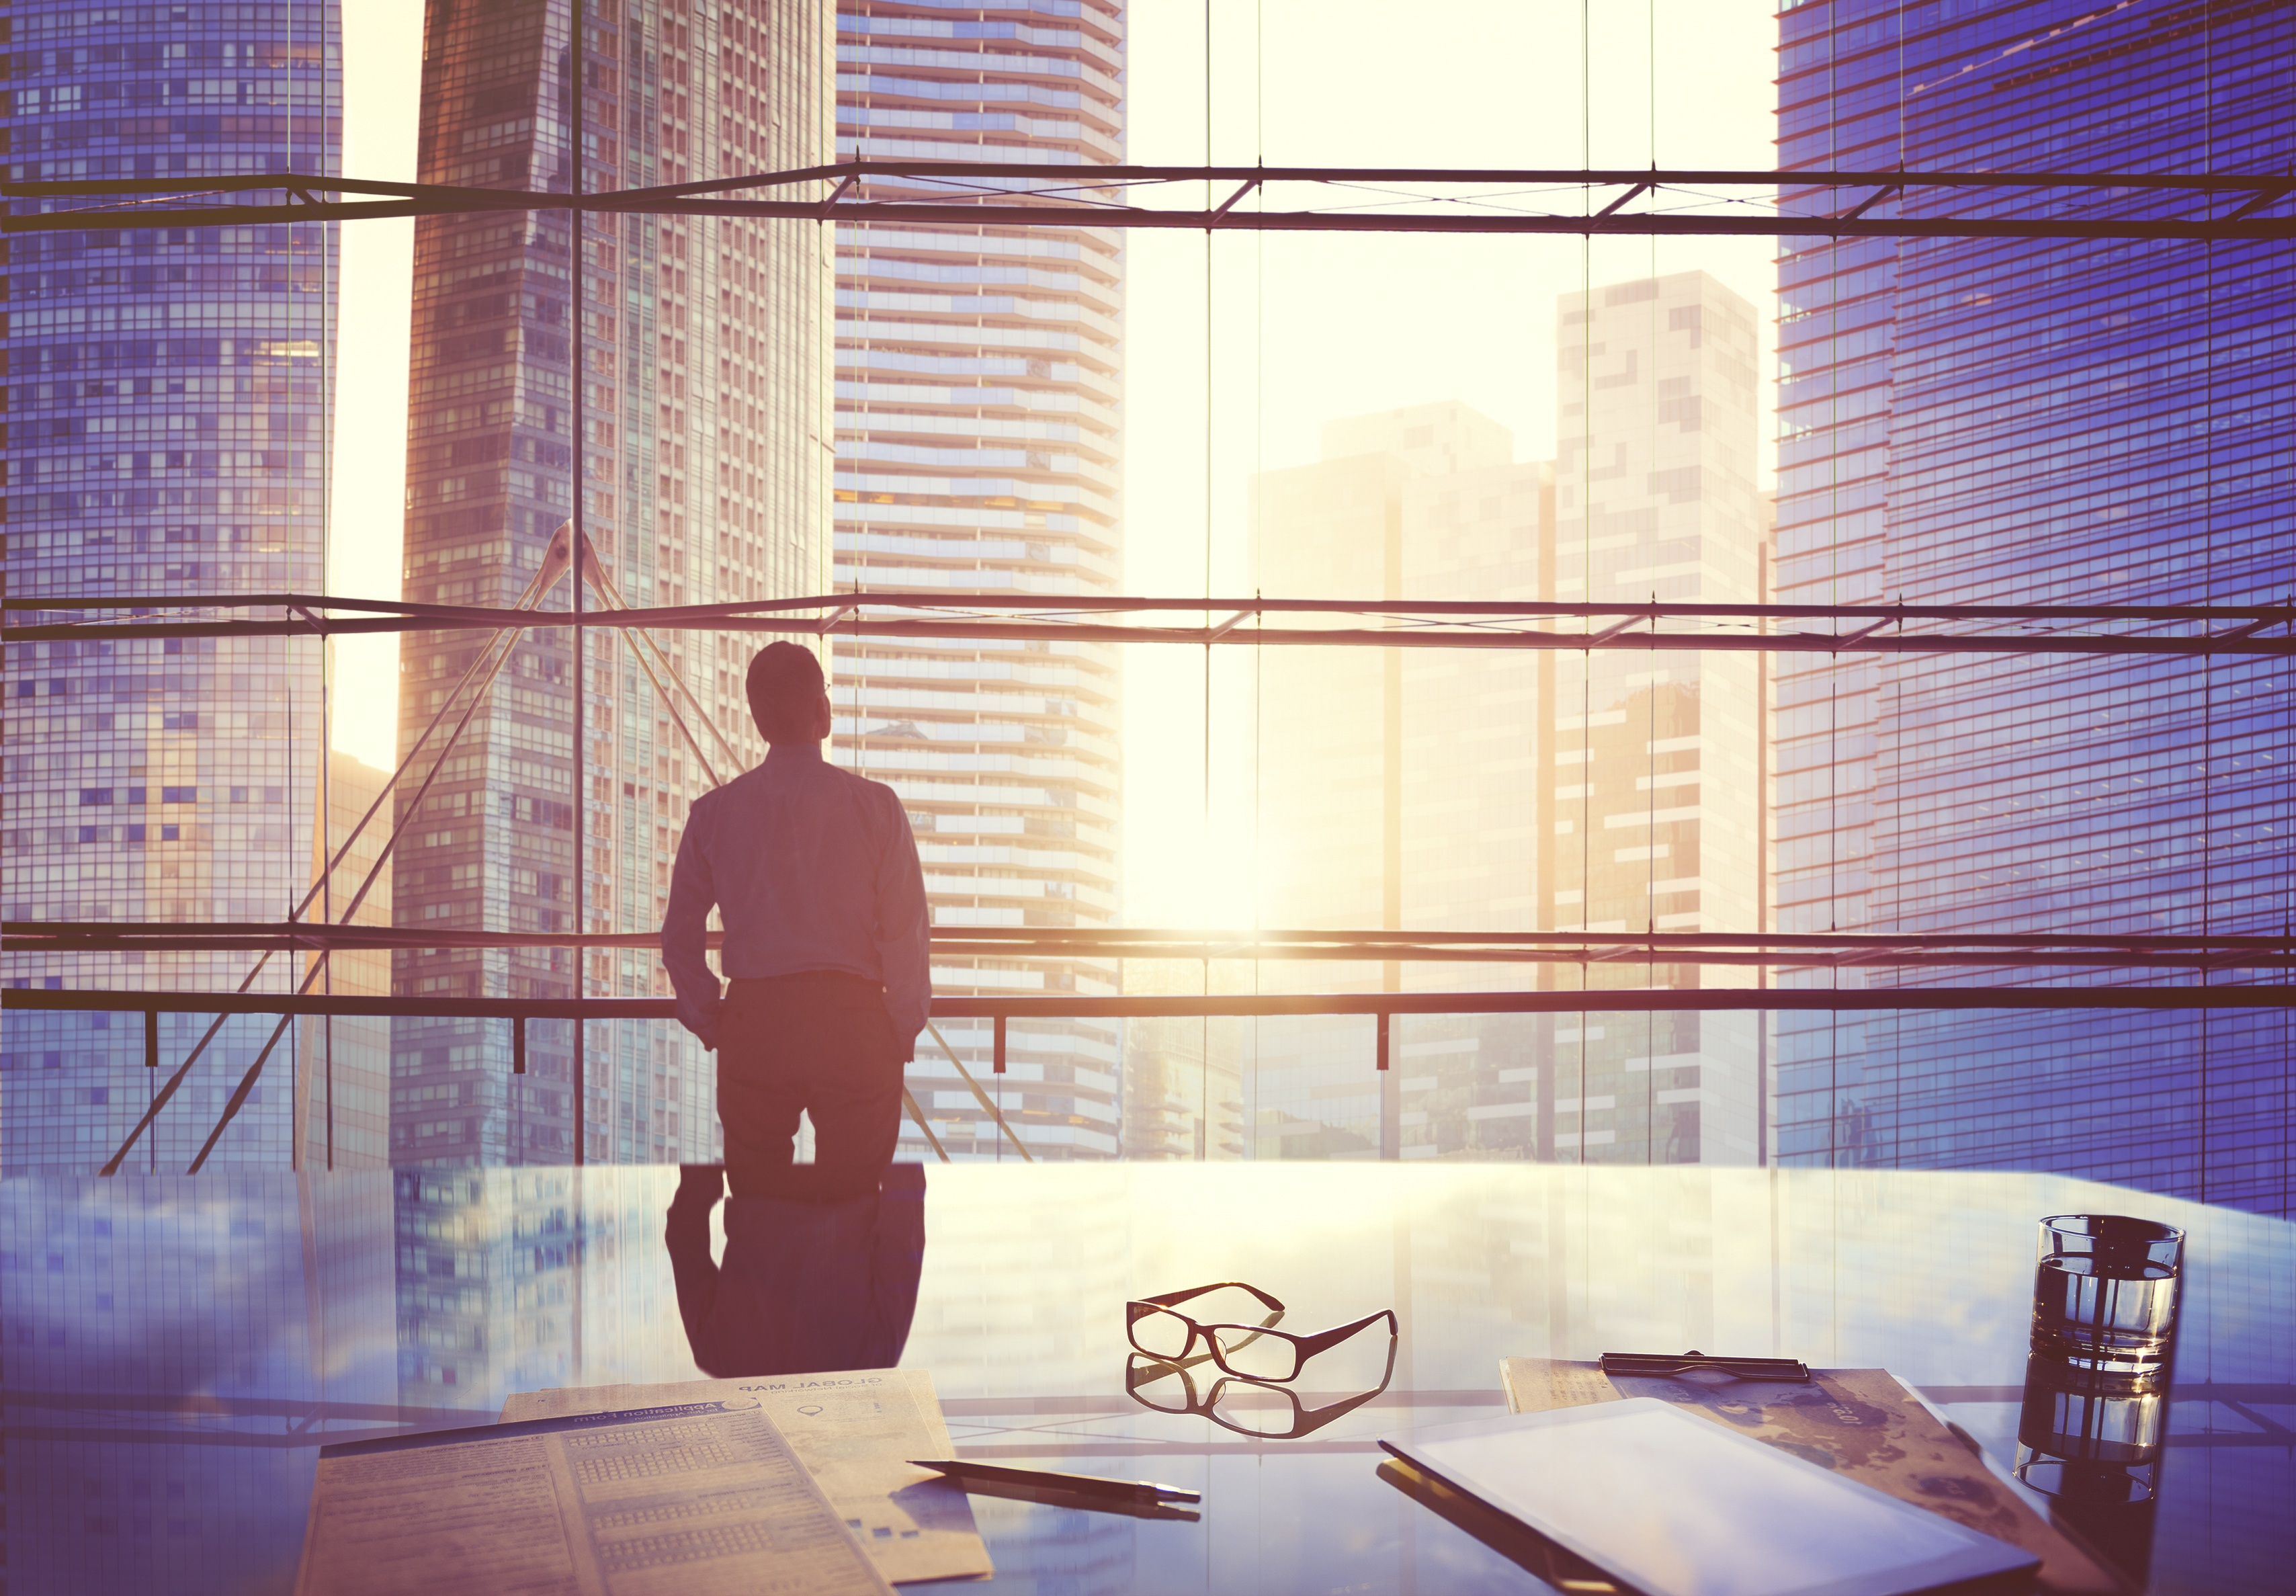 Rawpixel.com by Shutterstock a man in a suit standing in front of a big window and watching sunset between skyscrapers